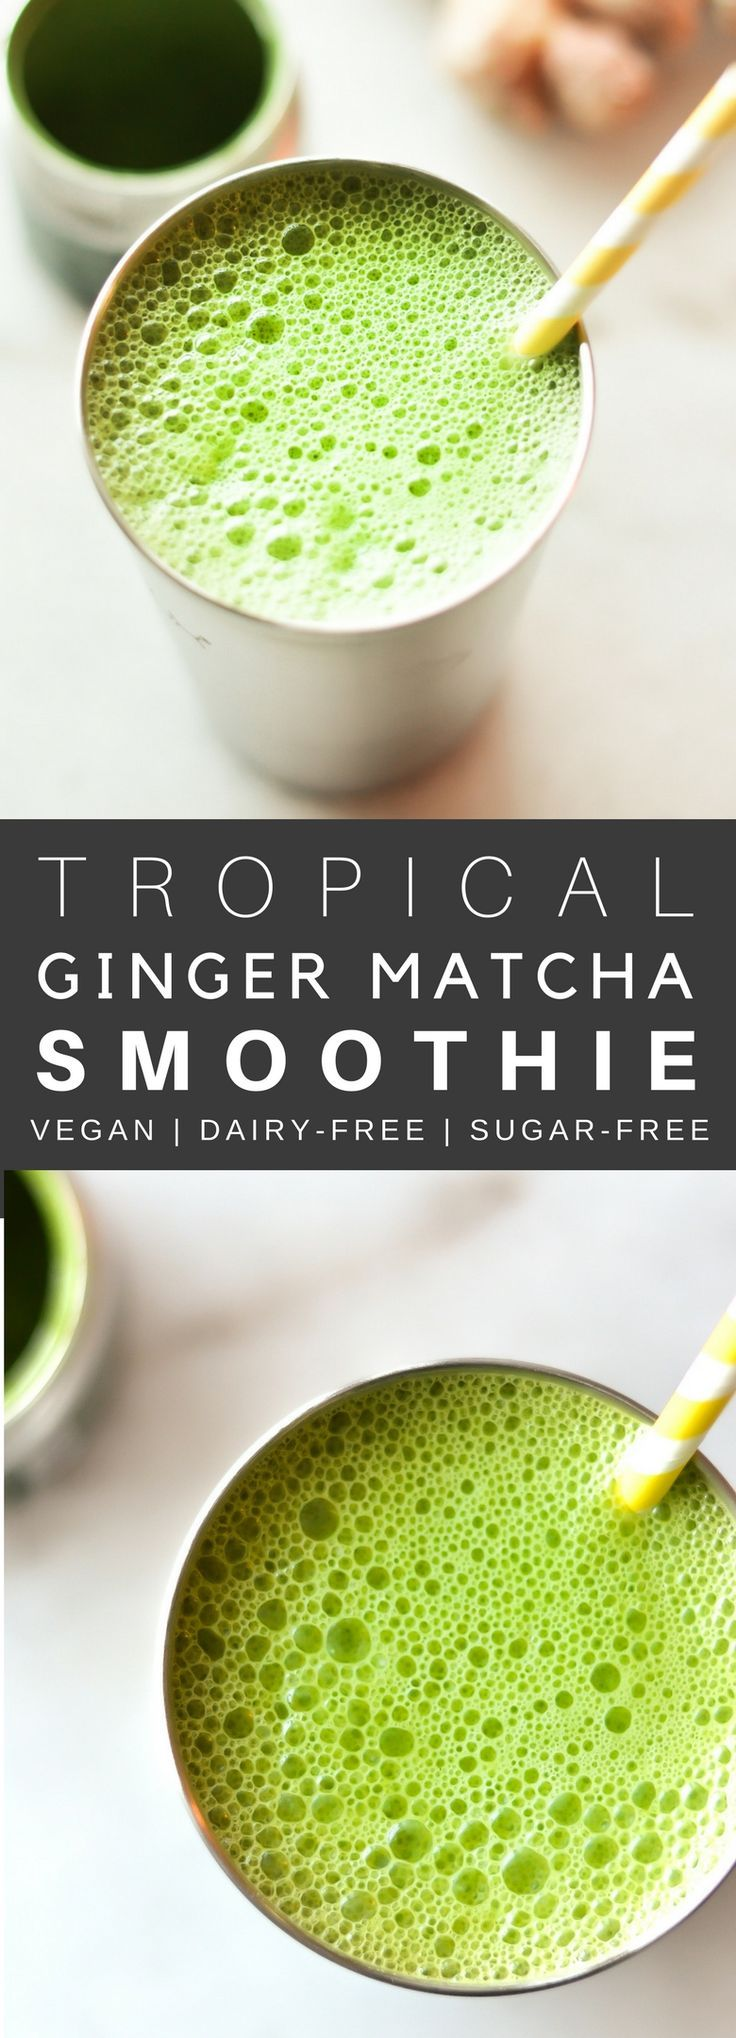 A delicious and simple green smoothie made with spinach, mango, matcha, and ginger. This energizing mix will have you missing warmer weathers, especially this time of the year! You can add dates for additional sweetness or stick to the basics. And it take